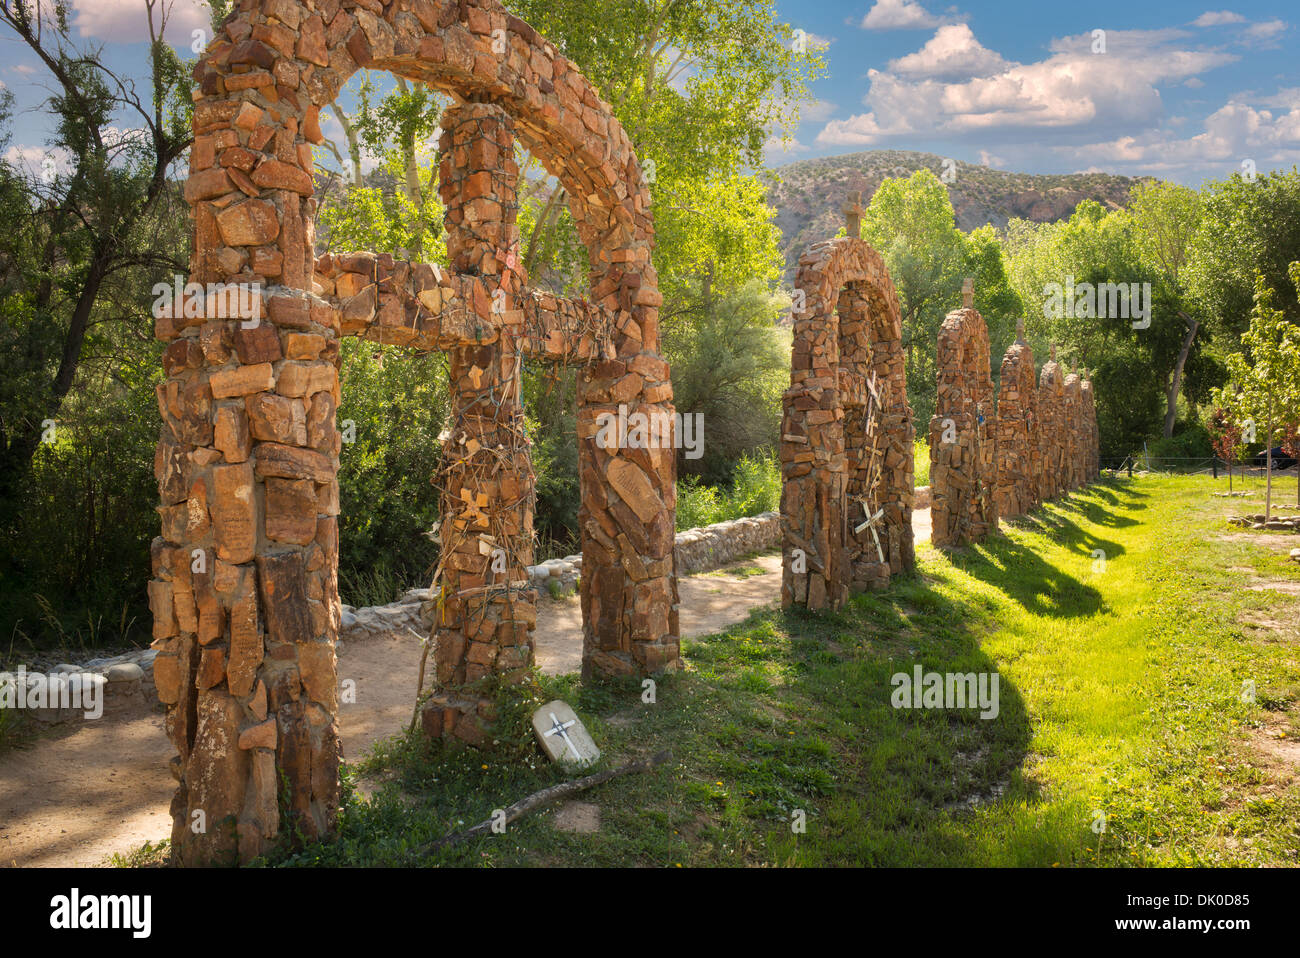 Stations of the cross at Santuario de Chimayo, New Mexico - Stock Image